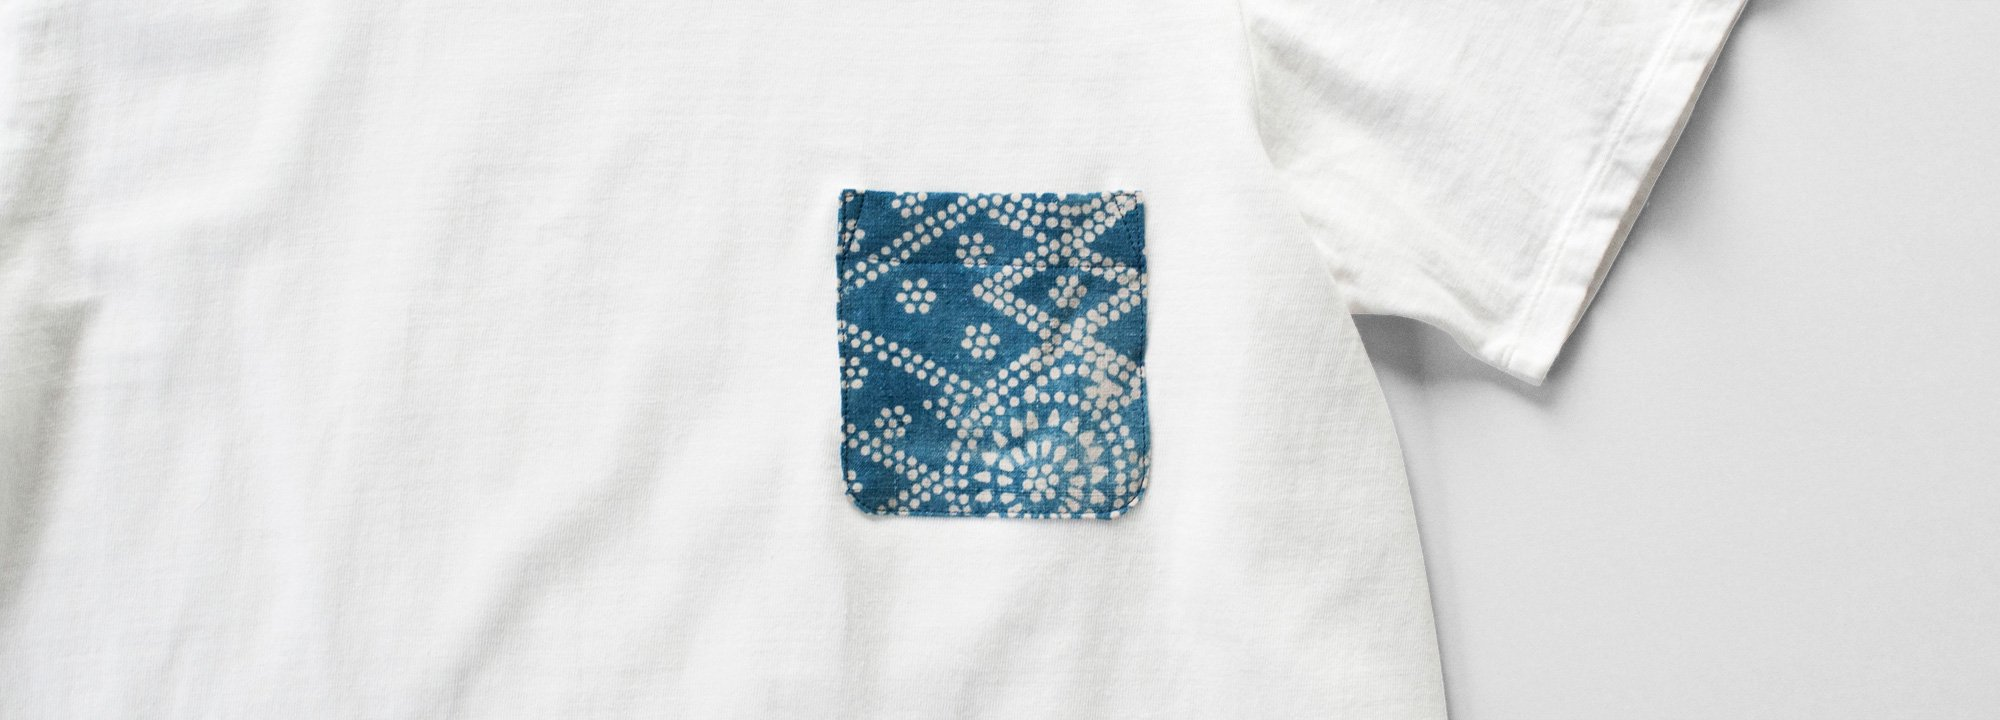 Organic Cotton Antique Pocket